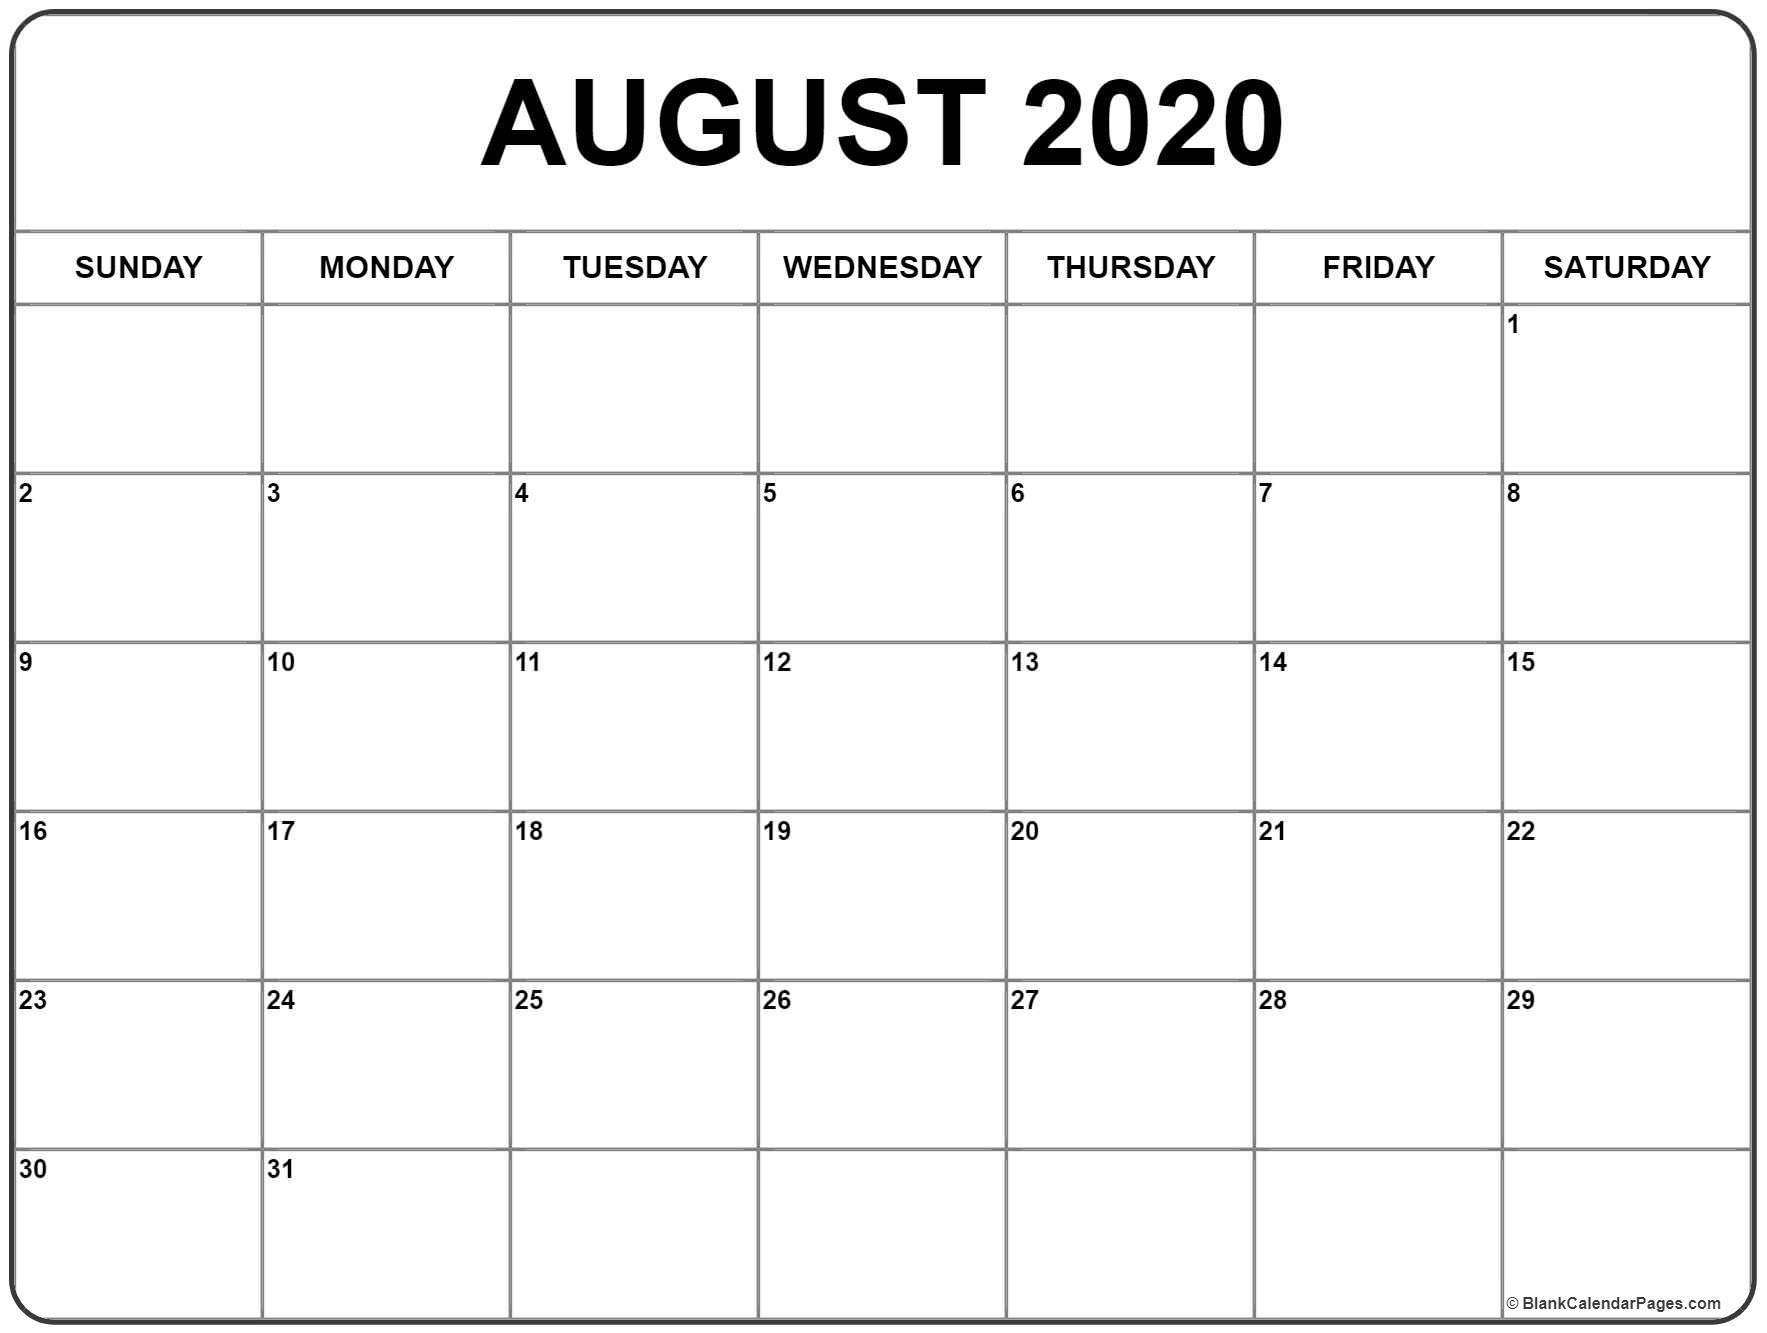 August 2020 Calendar | Free Printable Monthly Calendars inside August Fun Calendar Template